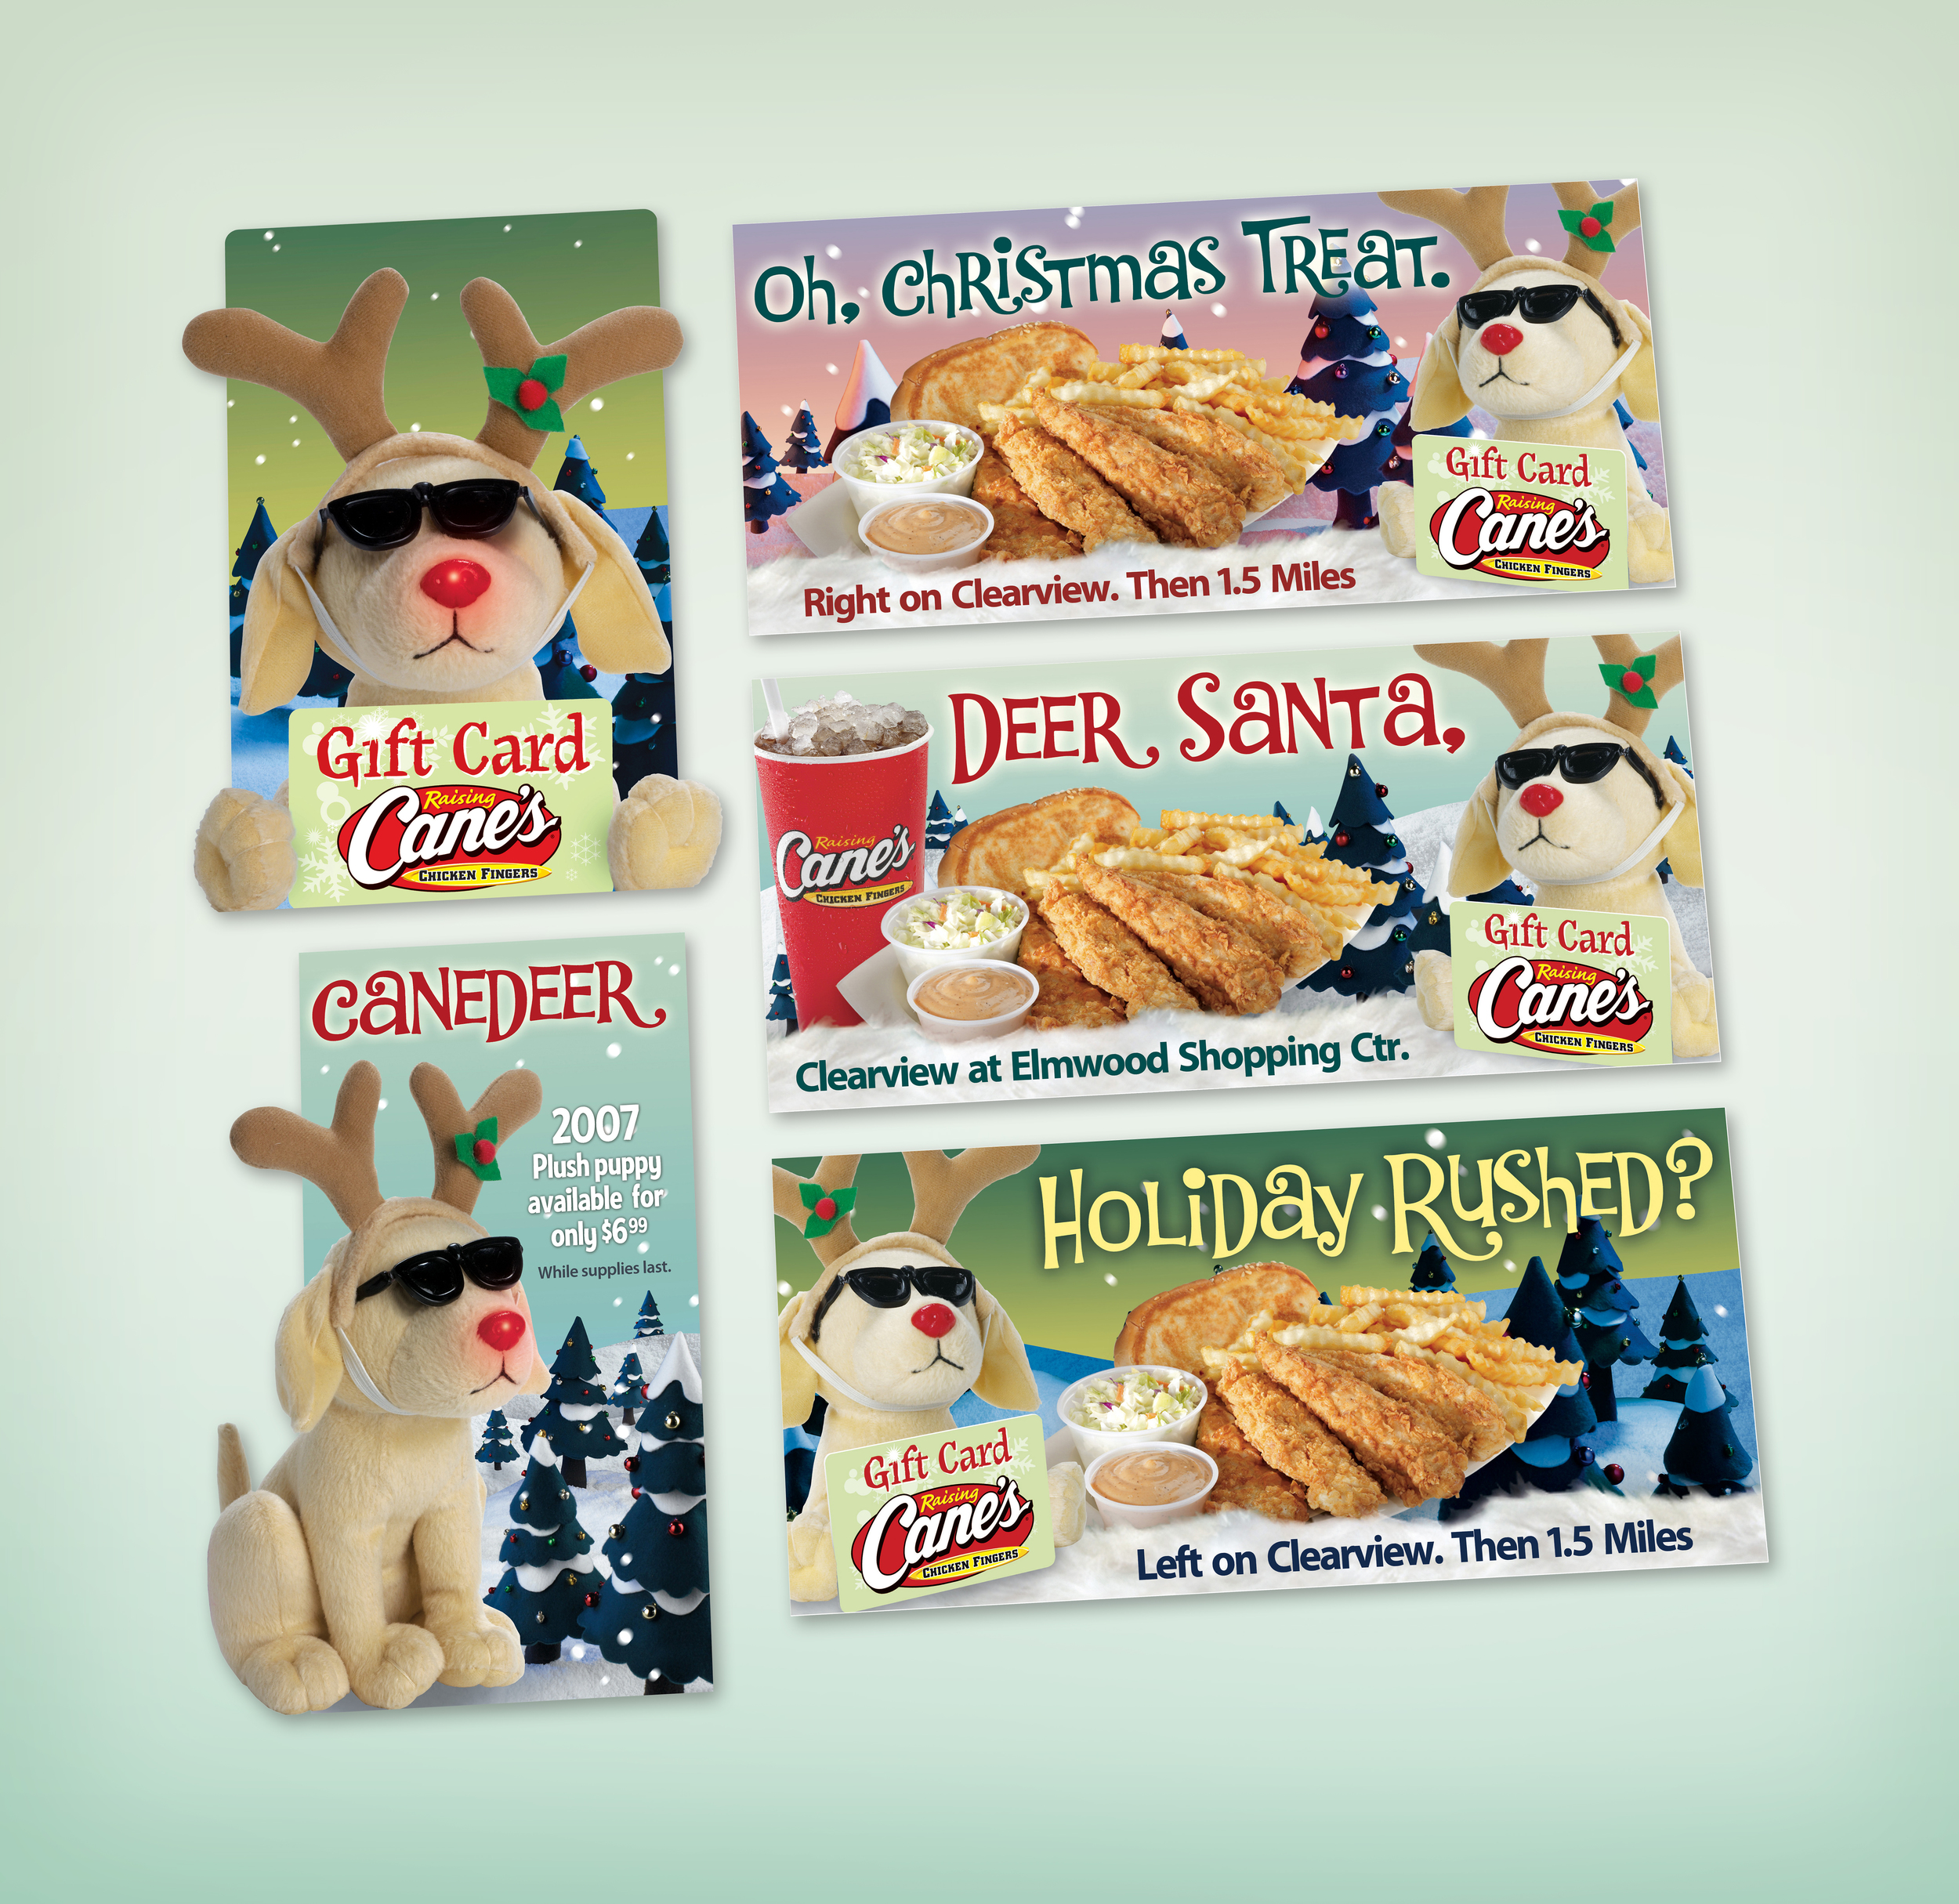 Raising Cane's Holiday Plush Puppy promotion  created for Diane Allen and Associates